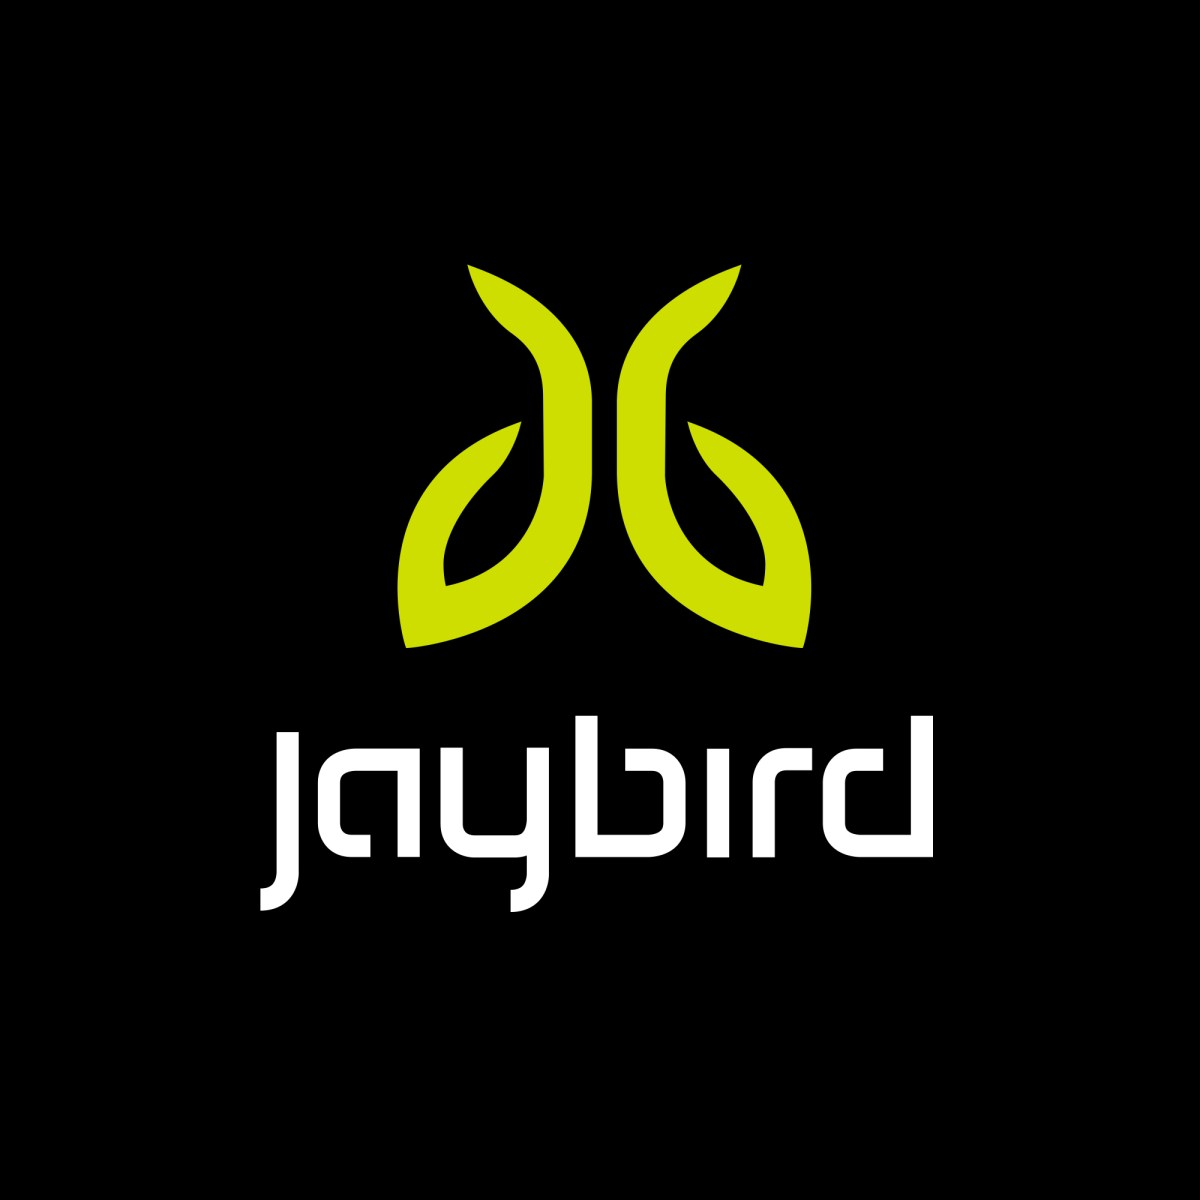 Jaybird discounts you don't want to miss